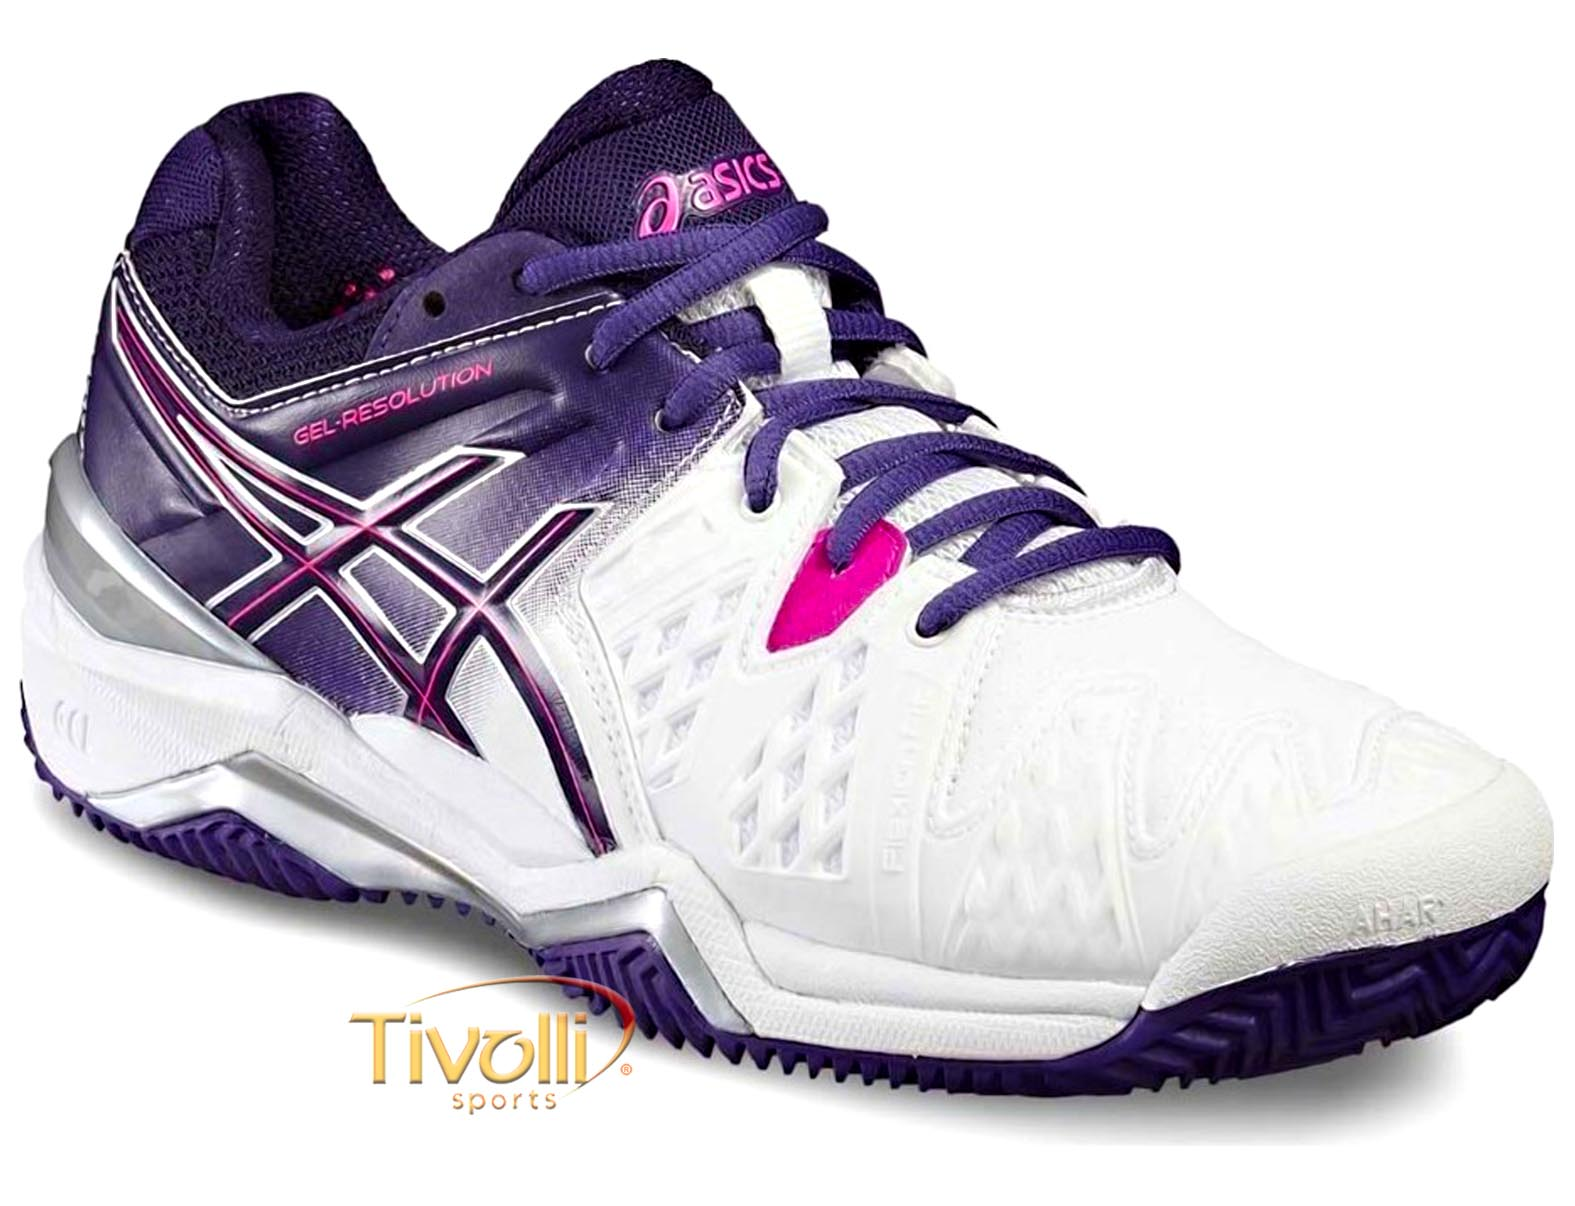 56a32bb84b Raquete Mania   Mega Saldão - Tênis Asics   Gel Resolution 6 Clay ...